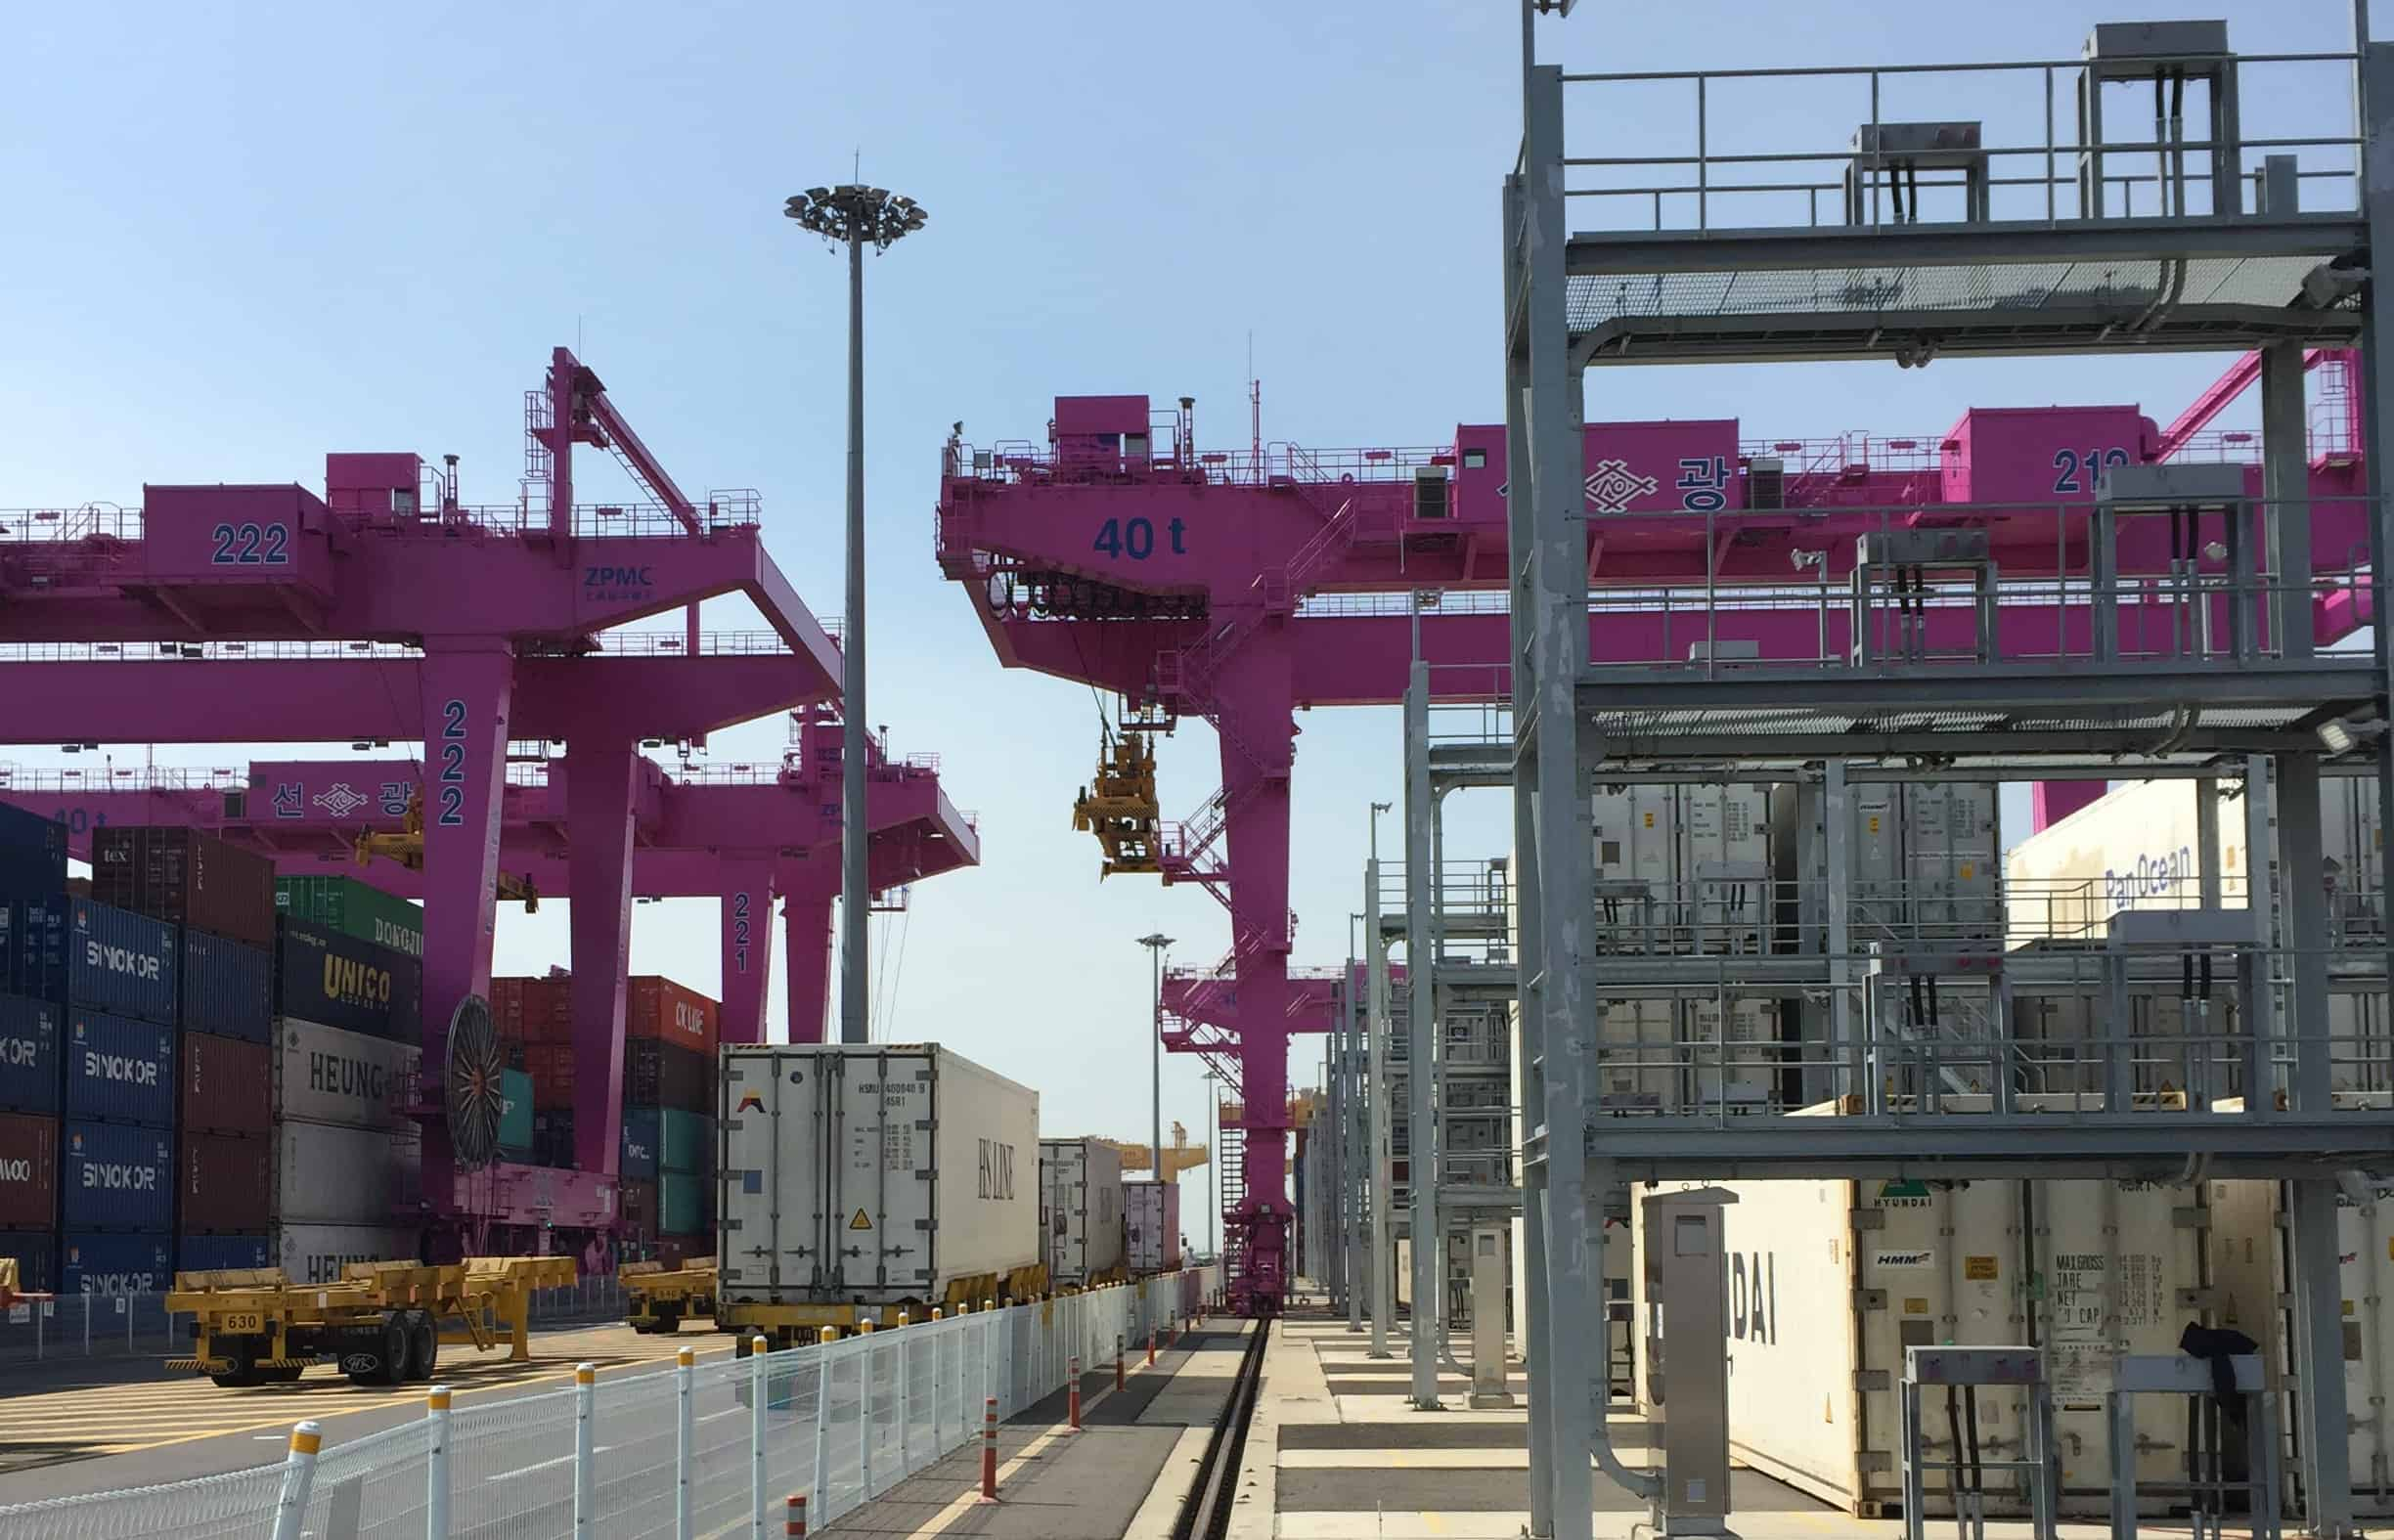 Lase's truck lifting prevention system installed at Incheon